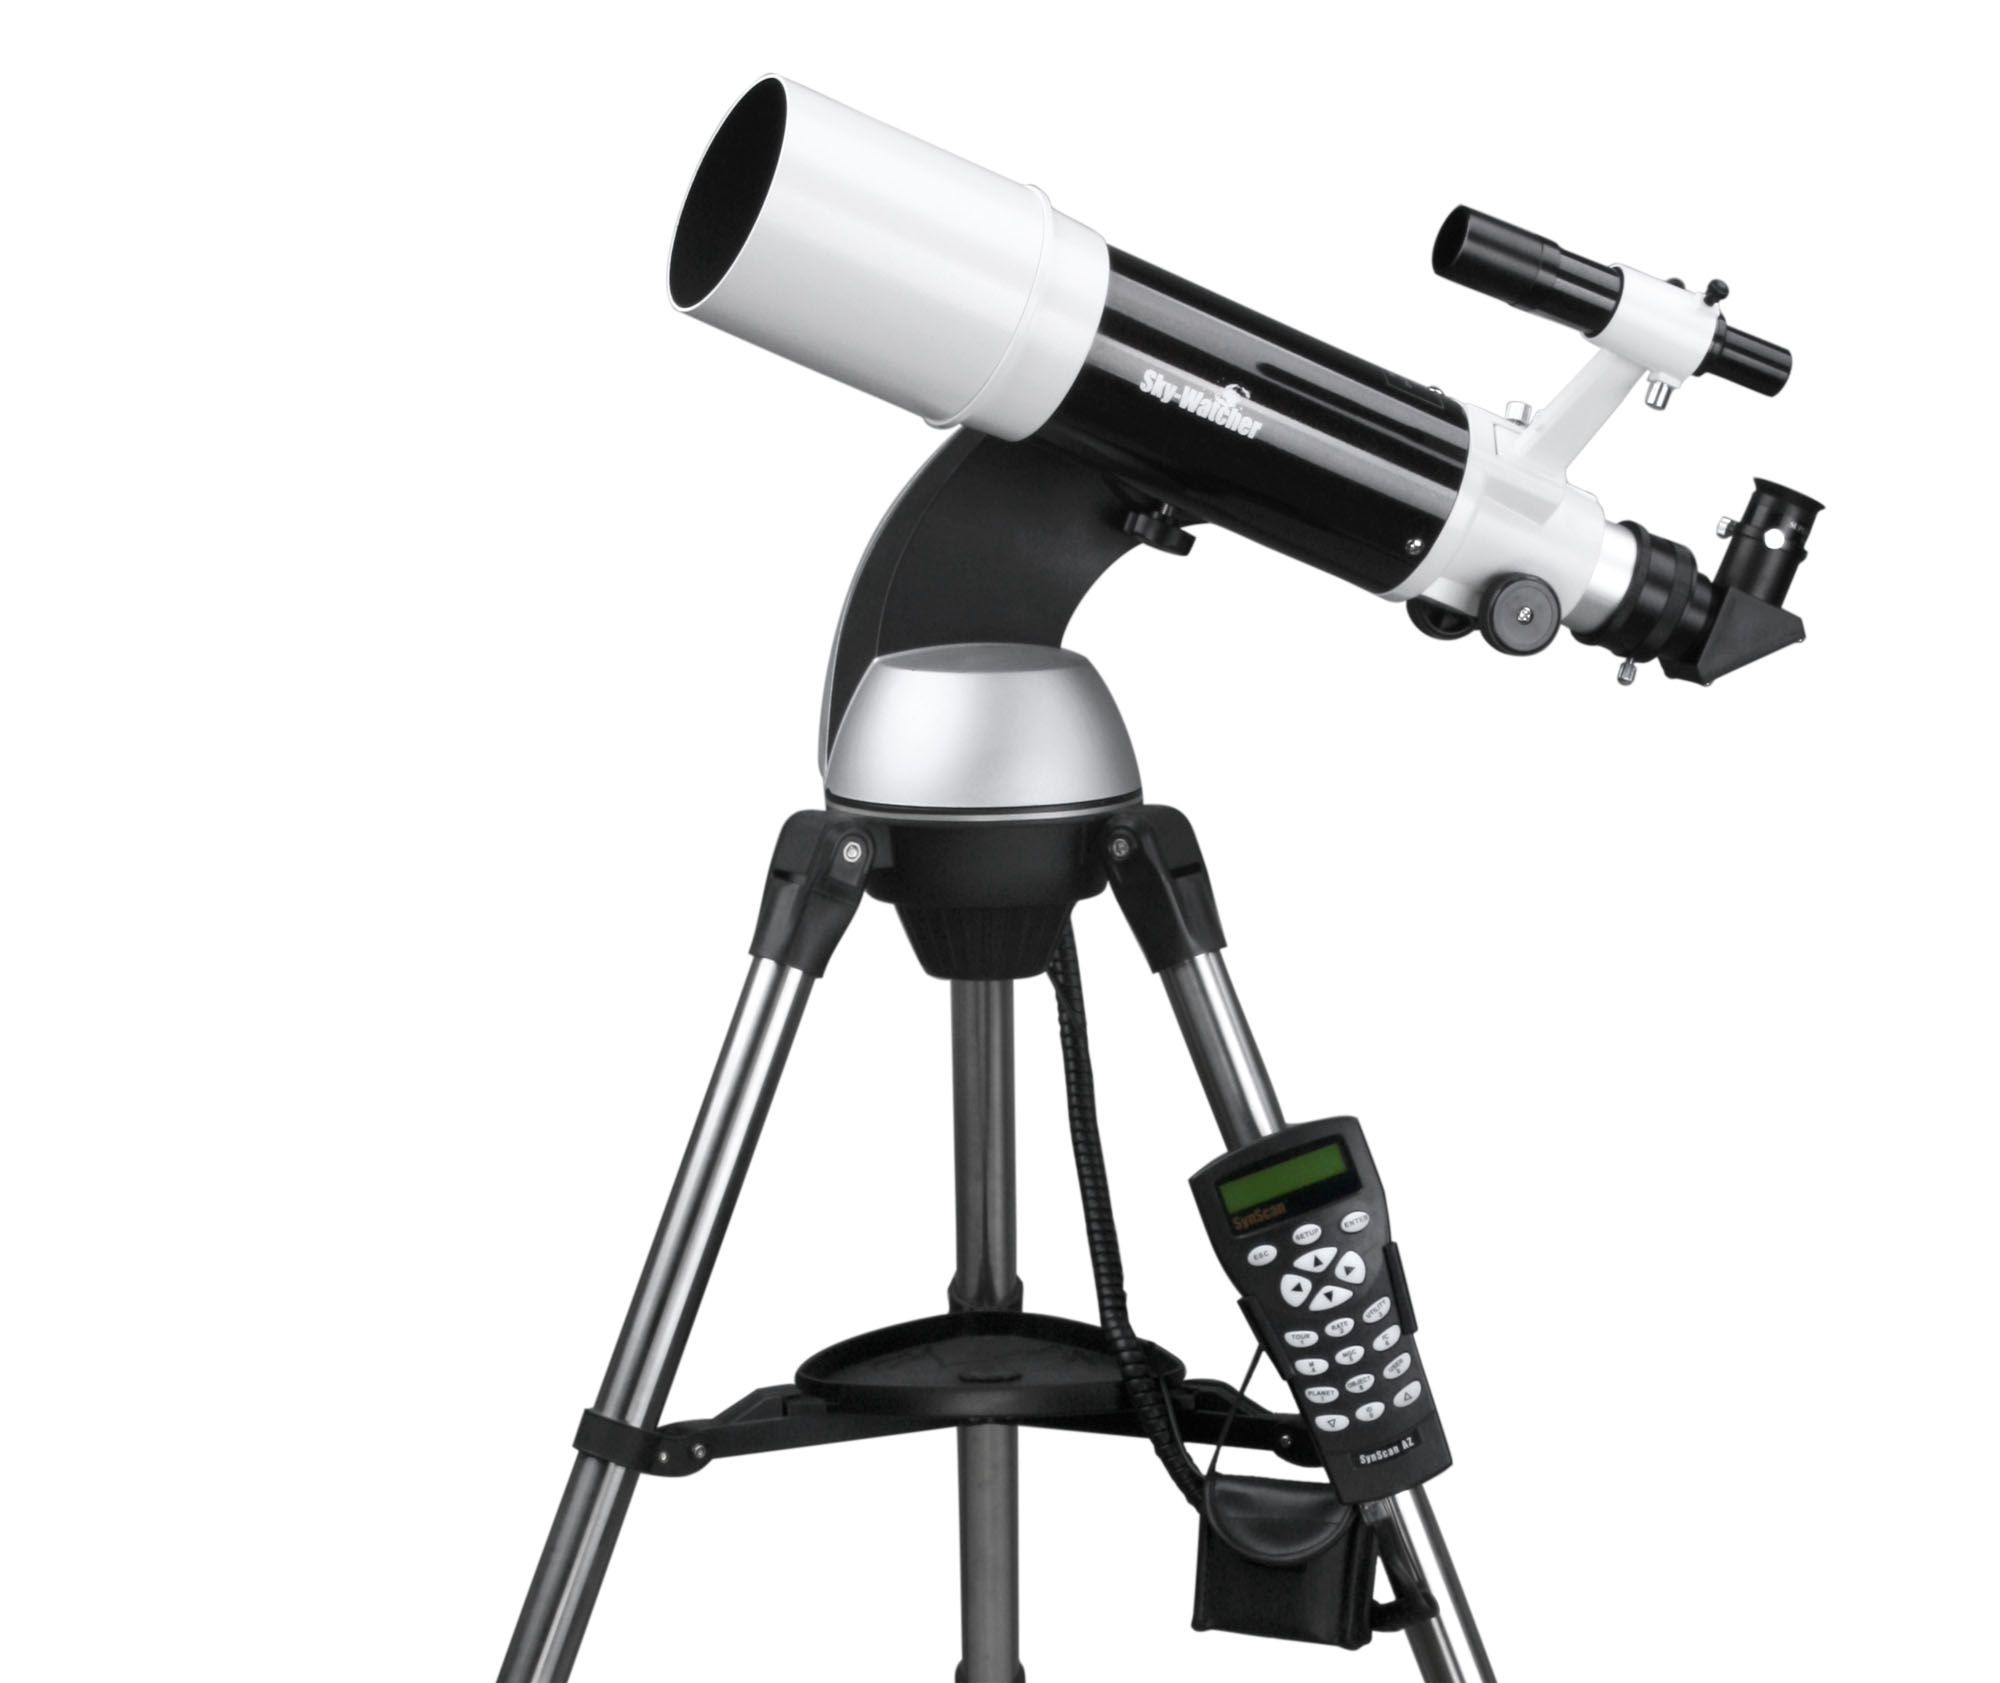 Lacerta SWR1025gt -SkyWatcher